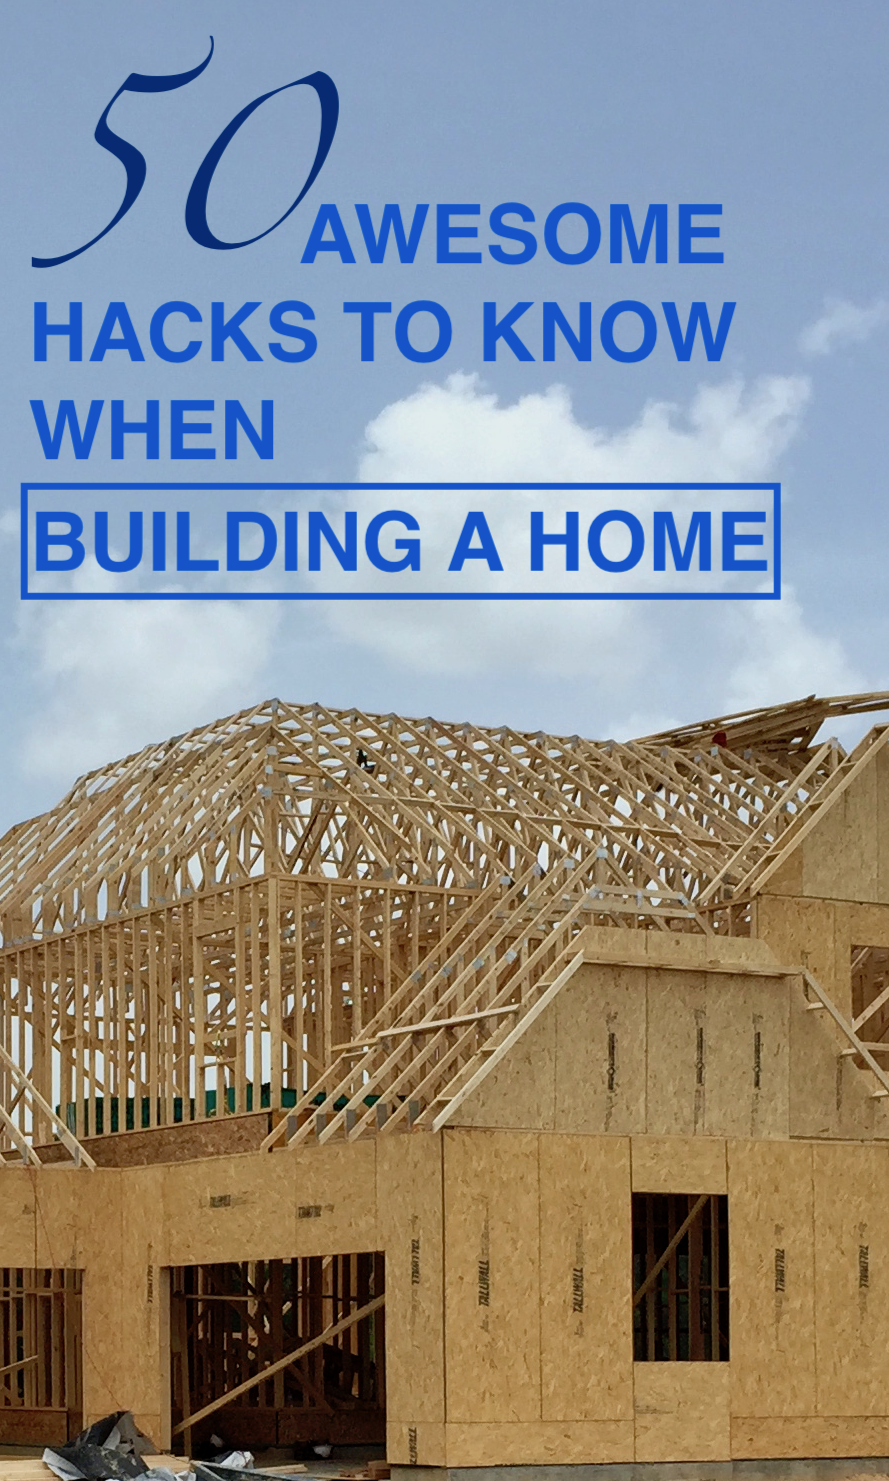 50 Awesome Hacks For Building A New Home Building A New Home Home Building Tips Building A House Checklist